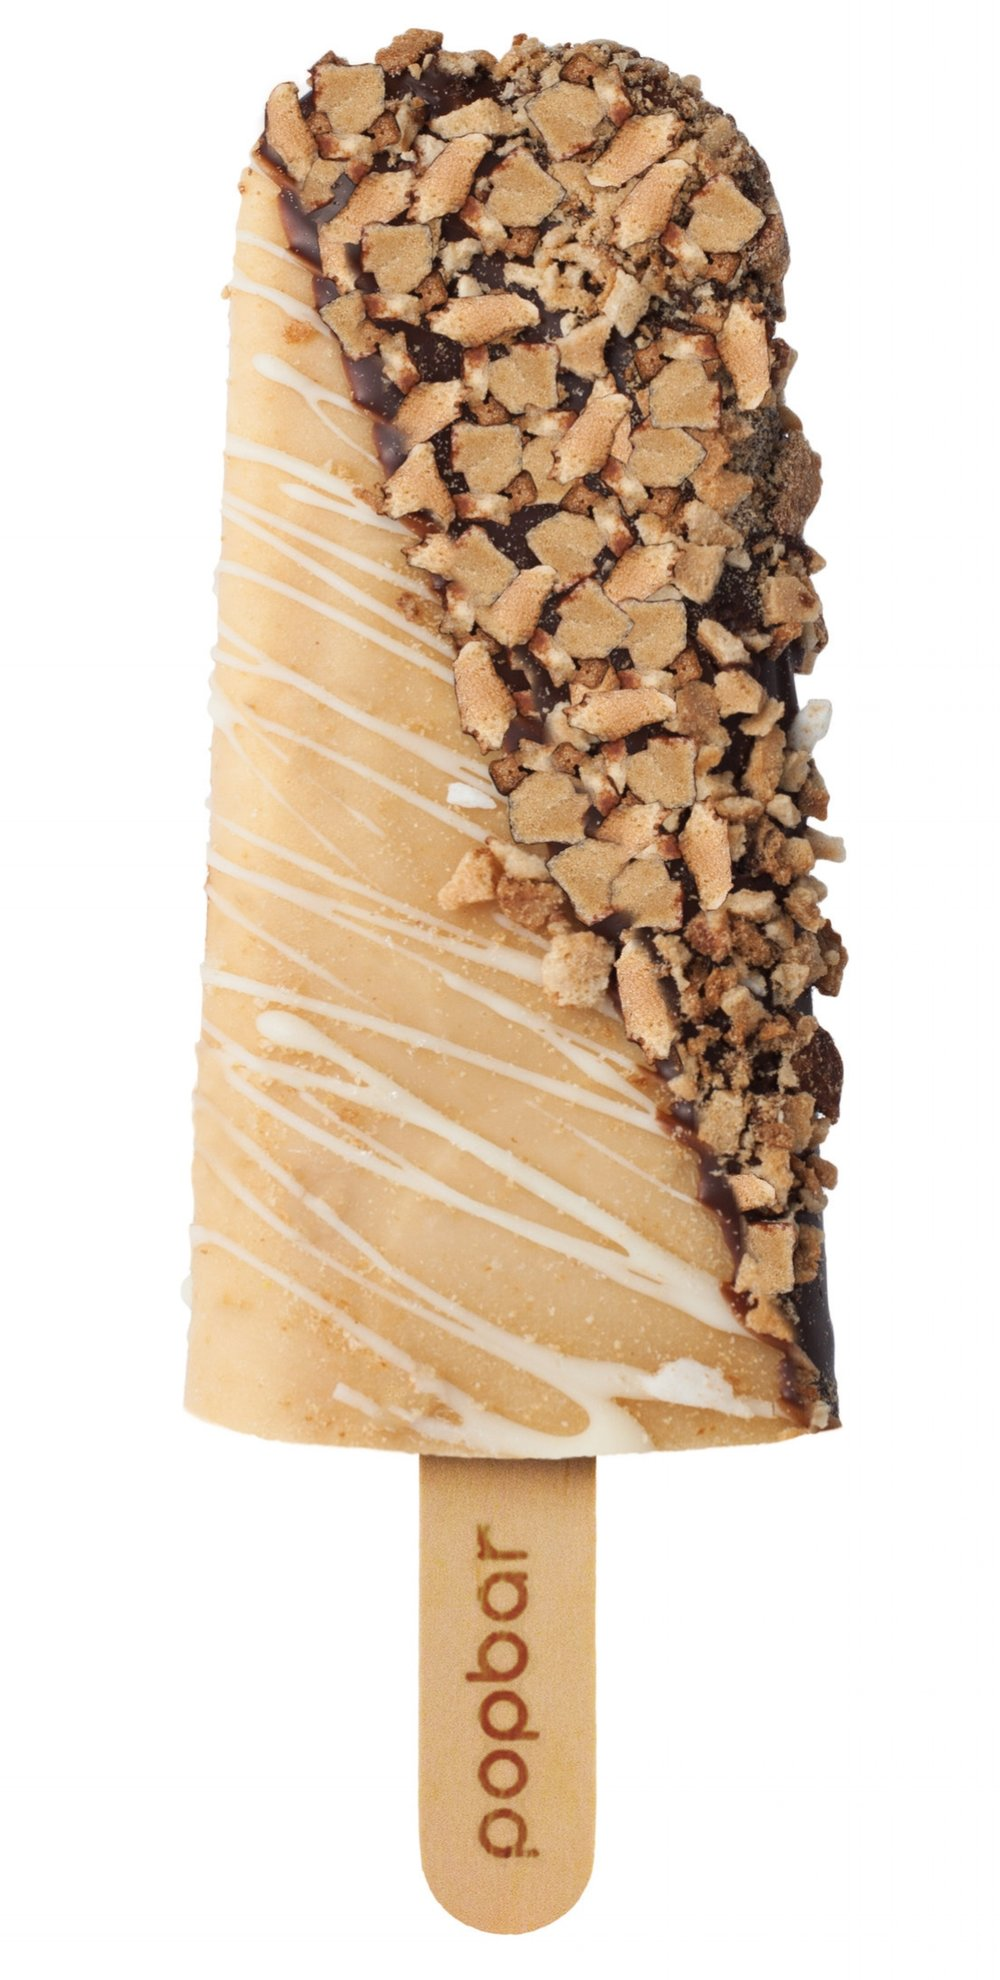 peanut butter with waffle cone and white chocolate drizzle